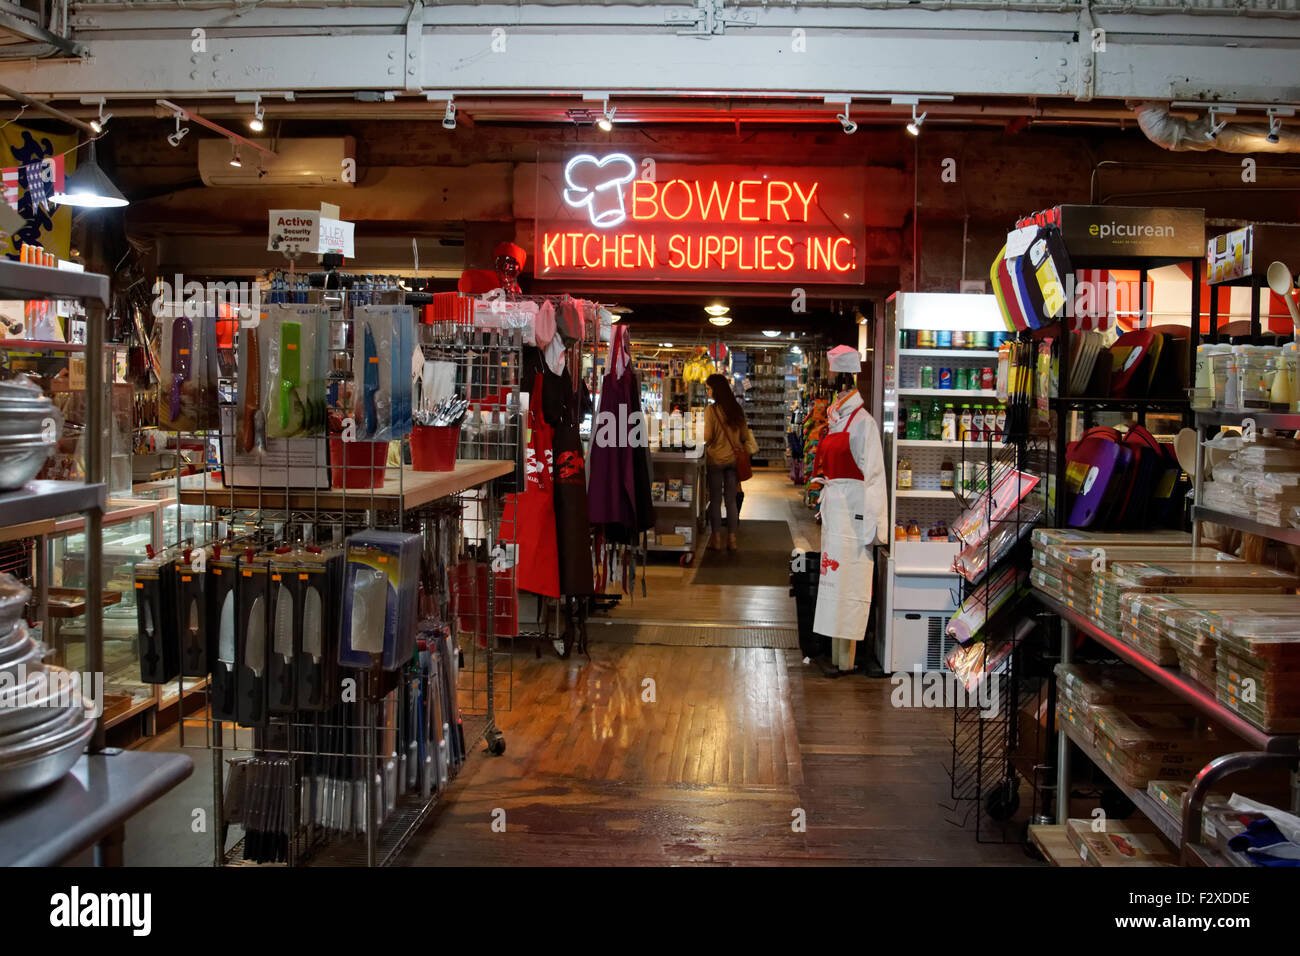 Bowery Kitchen Supplies Stores